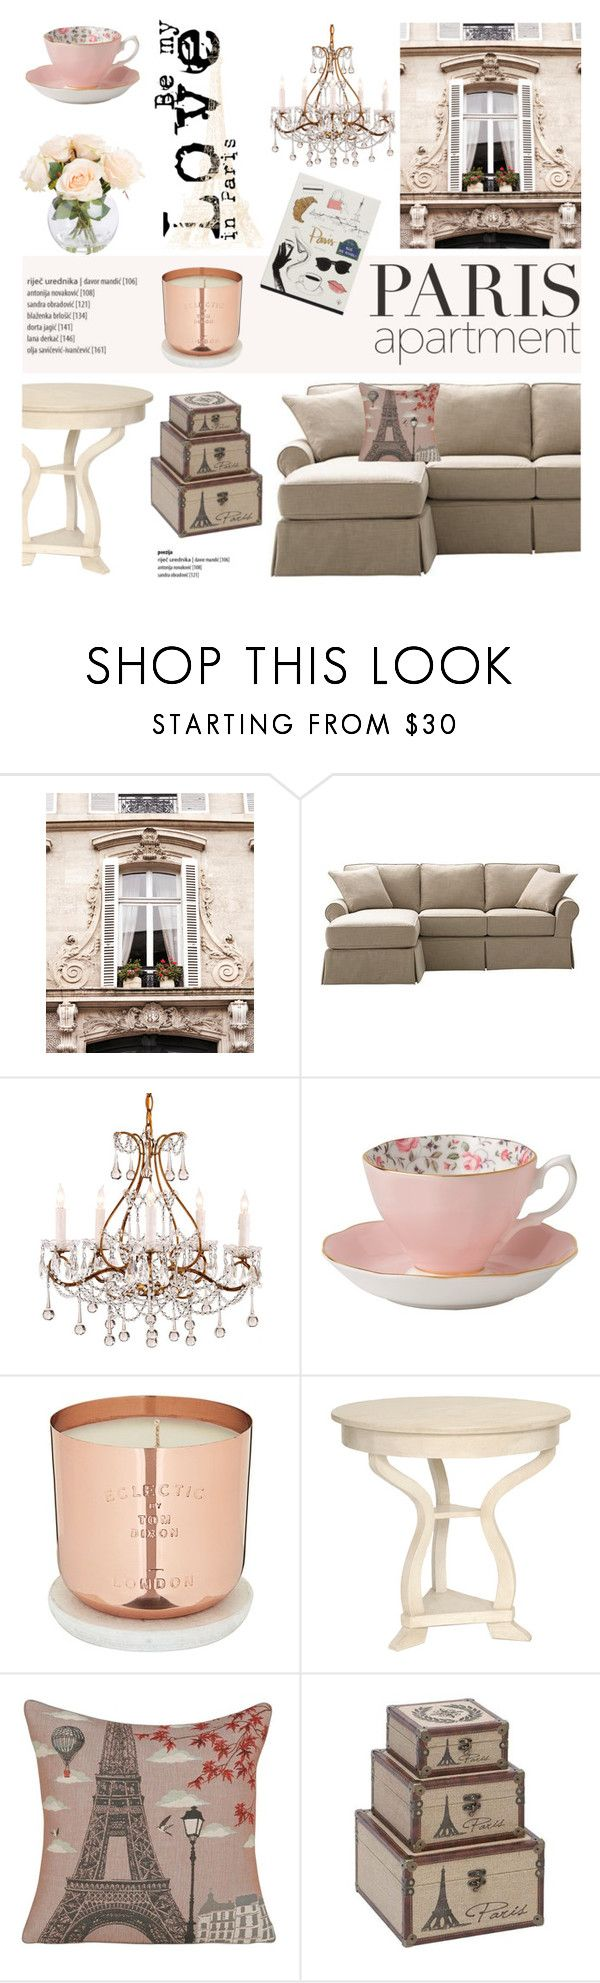 """""""Paris Apartment"""" by helenevlacho ❤ liked on Polyvore featuring interior, interiors, interior design, thuis, home decor, interior decorating, Home Decorators Collection, Royal Albert, Tom Dixon en Yves Delorme"""